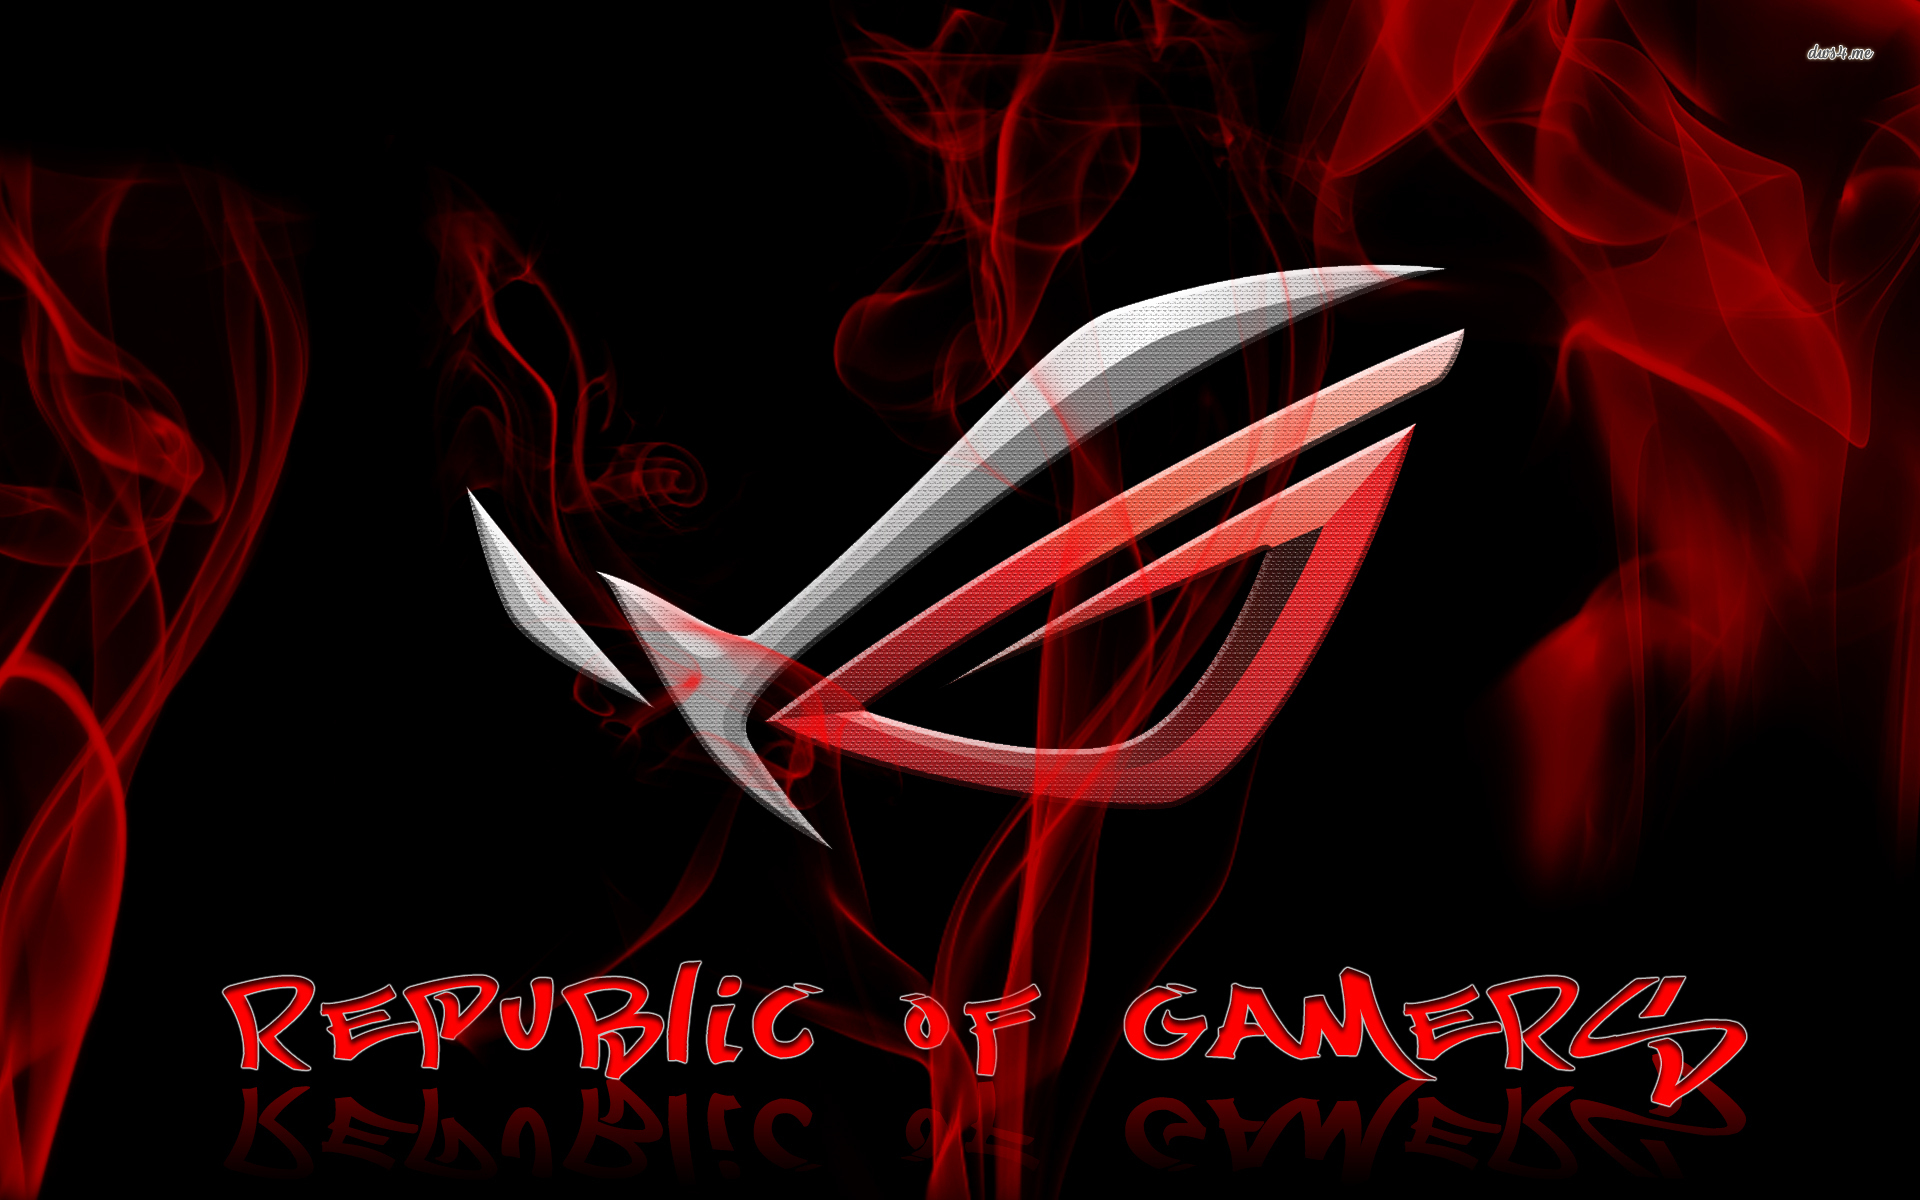 Republic Of Gamers wallpaper 256068 1920x1200